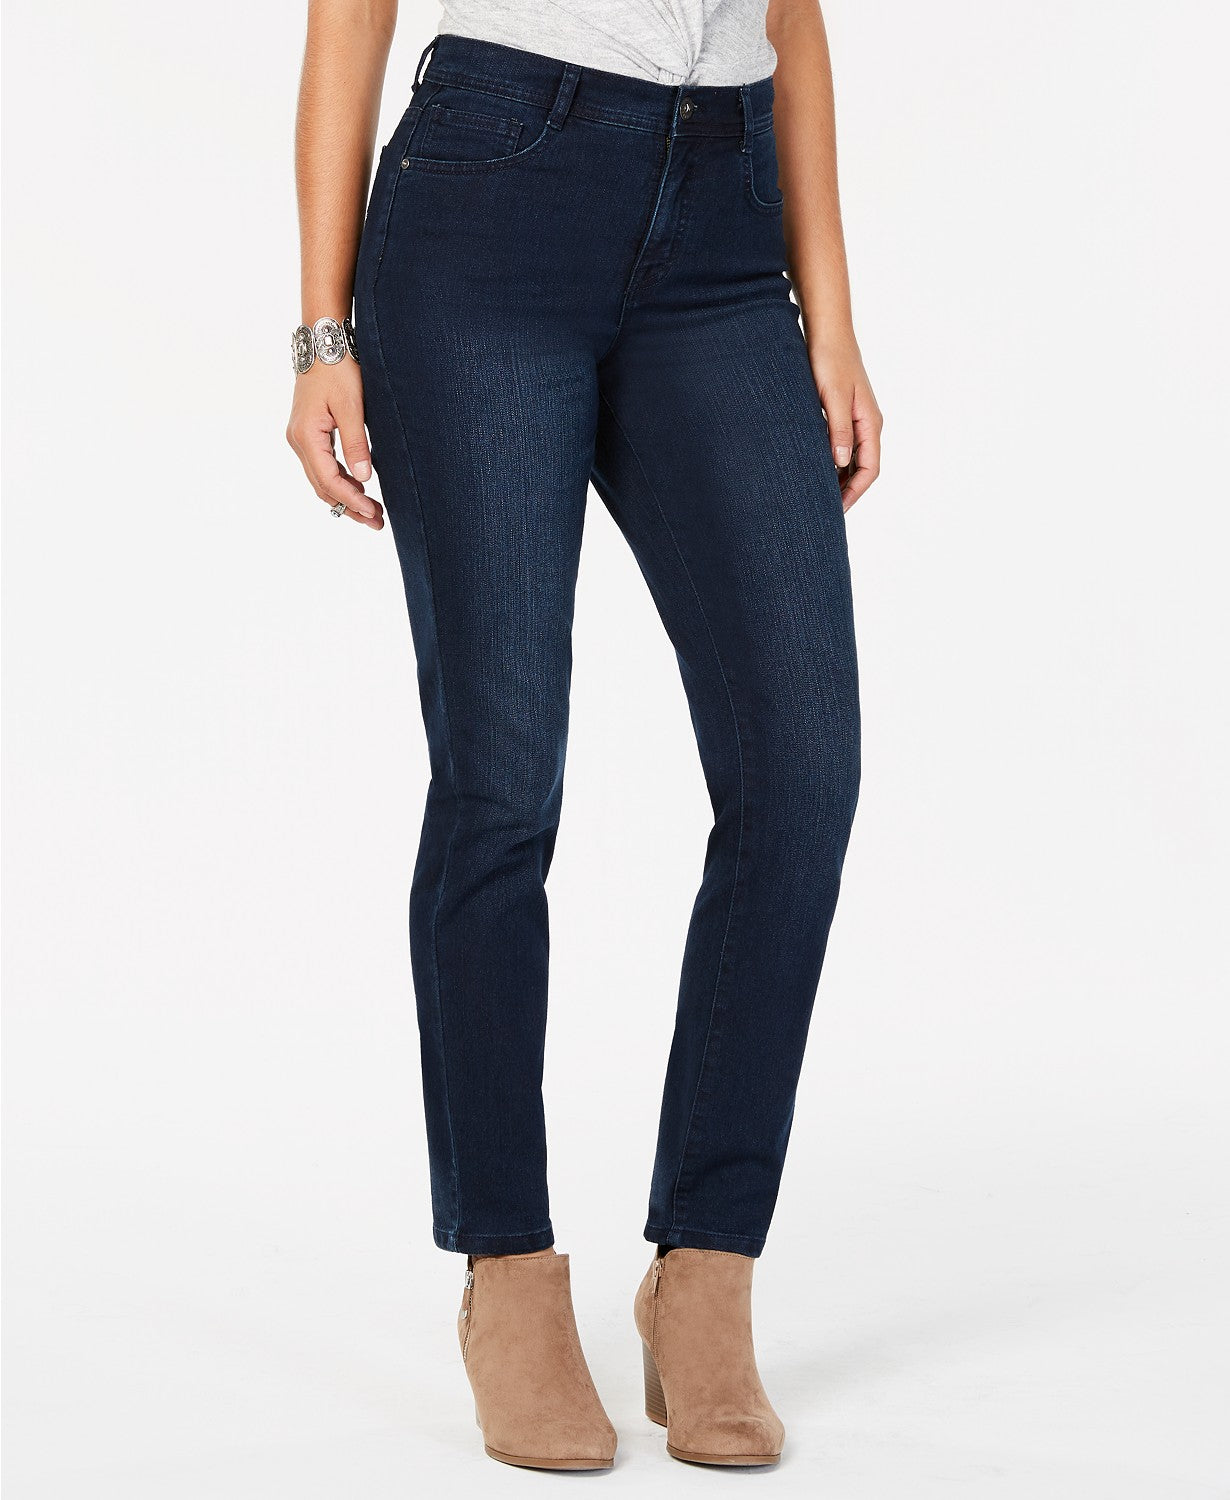 Style & Co. Womens High Rise Tummy Slimming Slim Leg Jeans